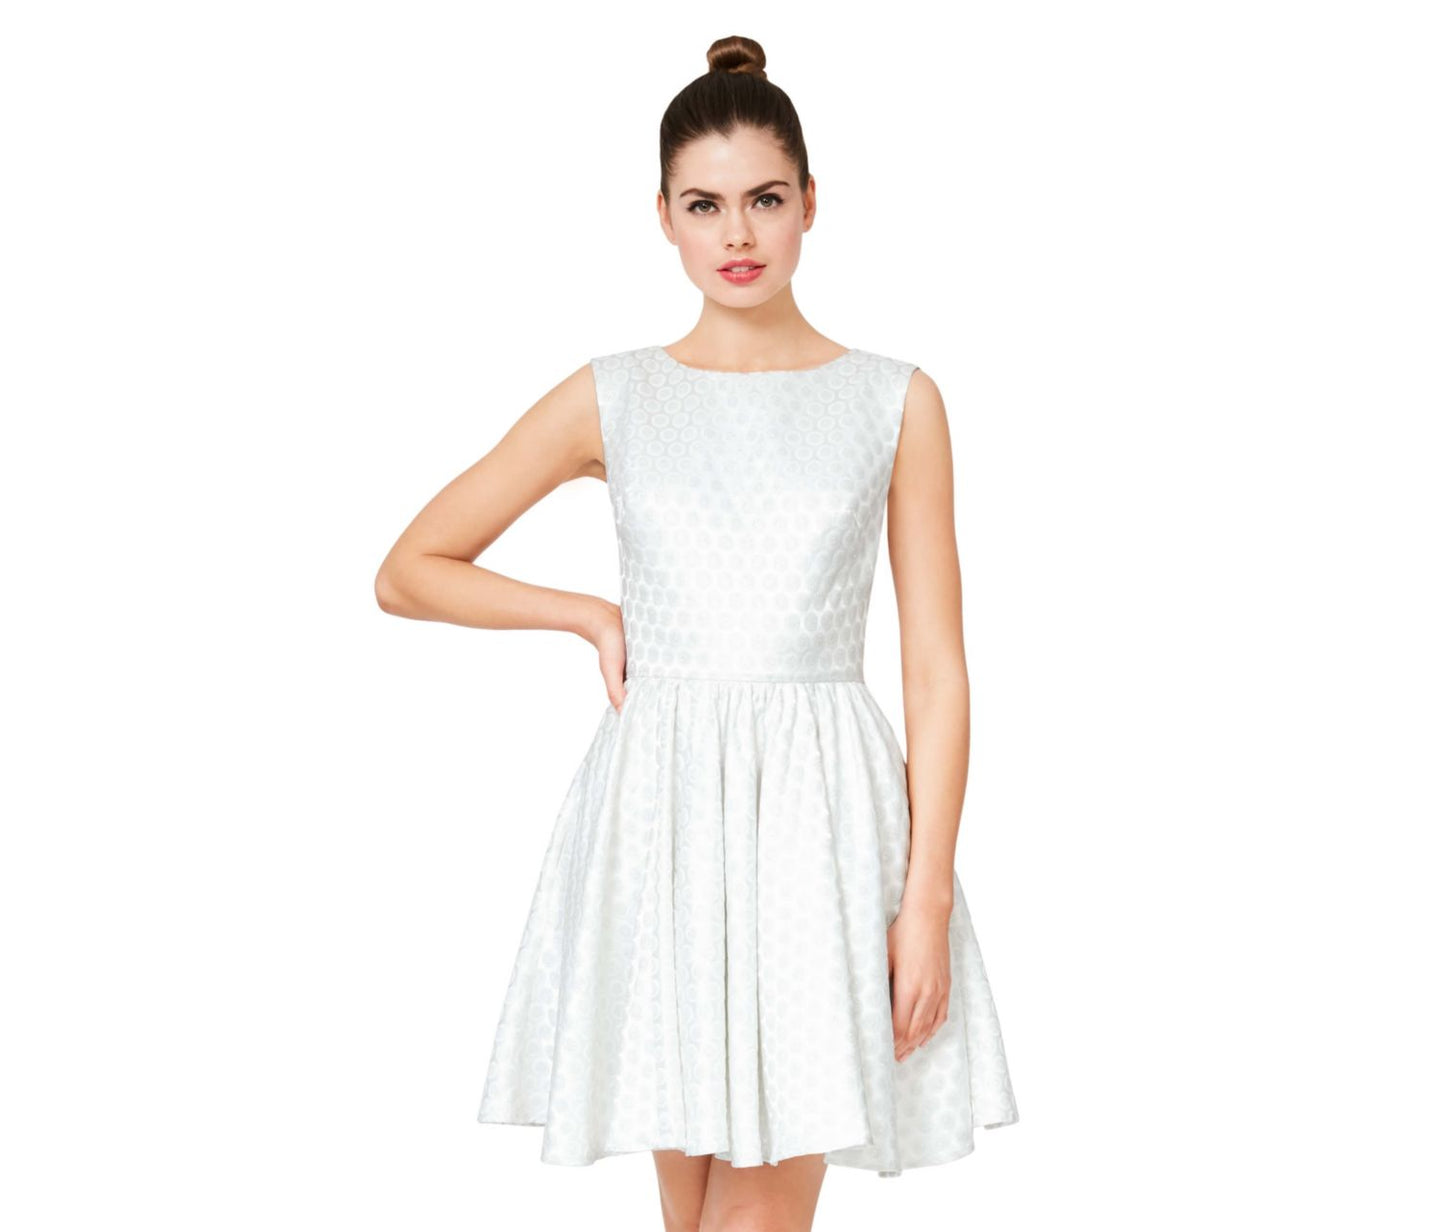 SWEET CONFECTION OPEN BACK PARTY DRESS WHITE - APPAREL - Betsey Johnson